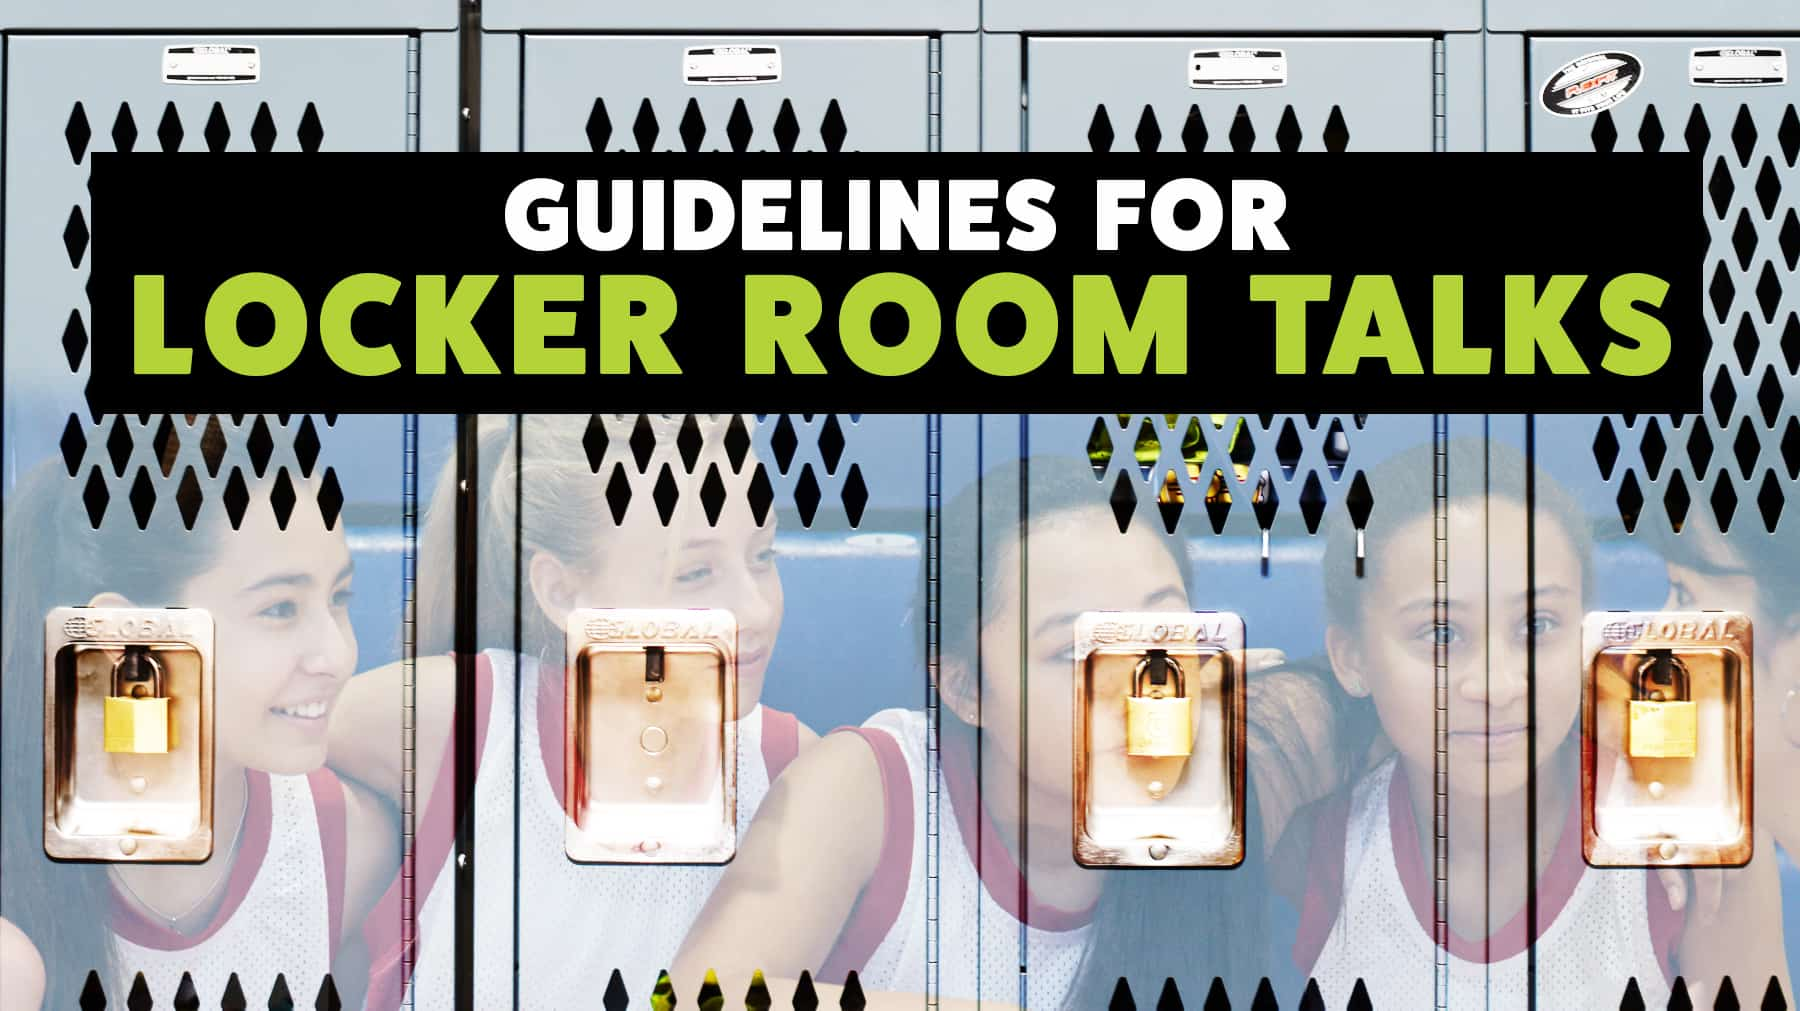 Guidelines for locker room talks